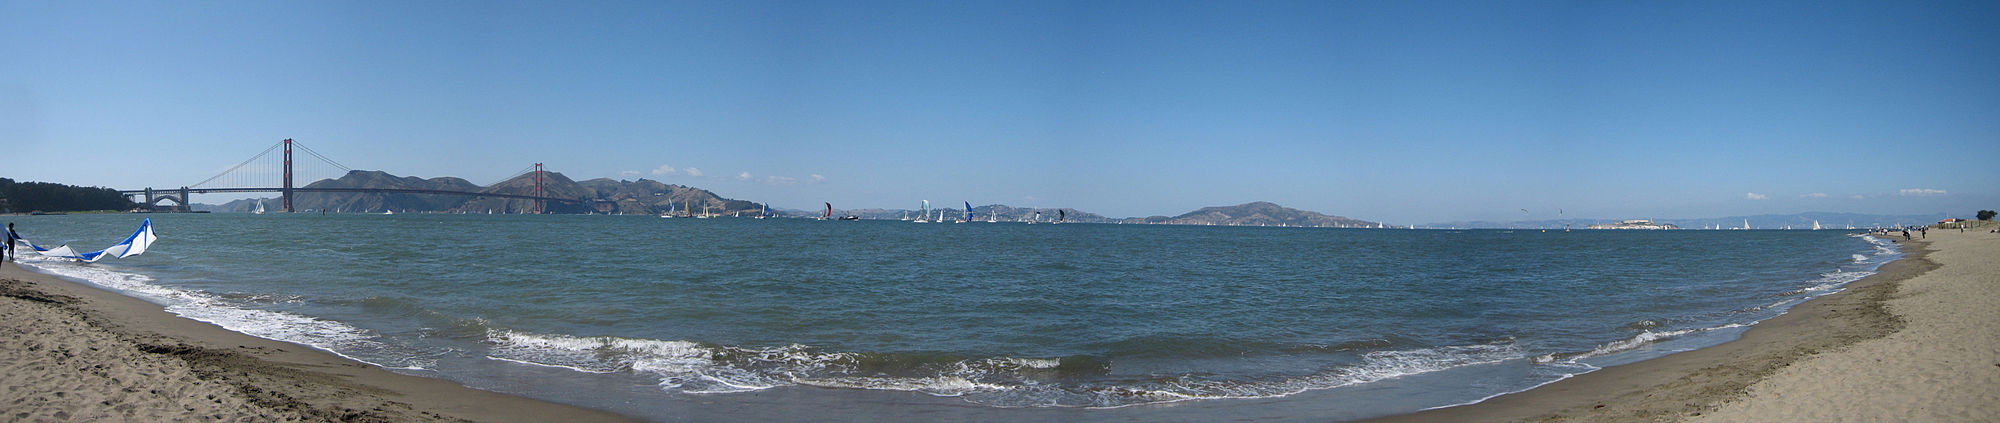 San Francisco Bay panorama with a view